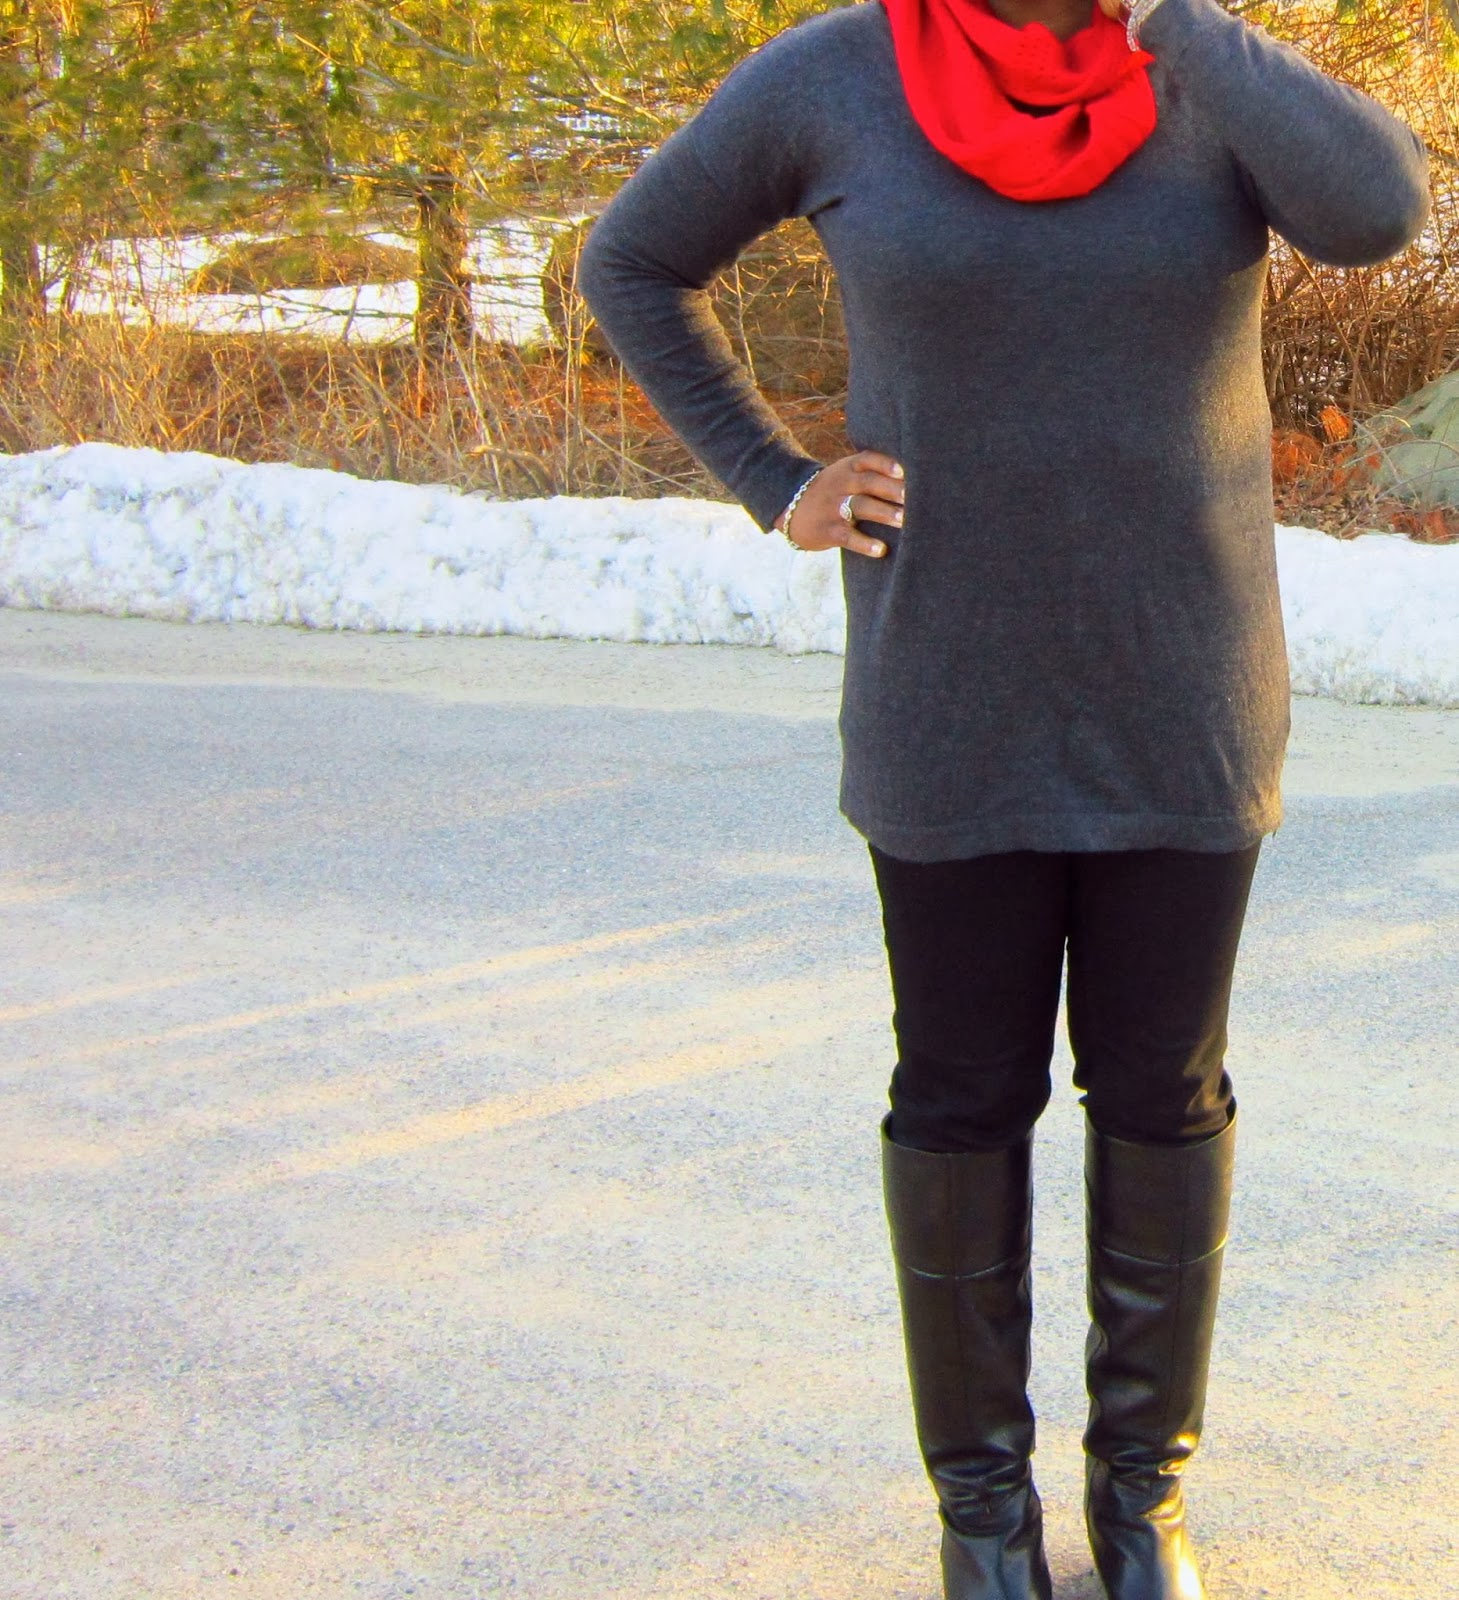 Nine West black boots, red infinity scarf